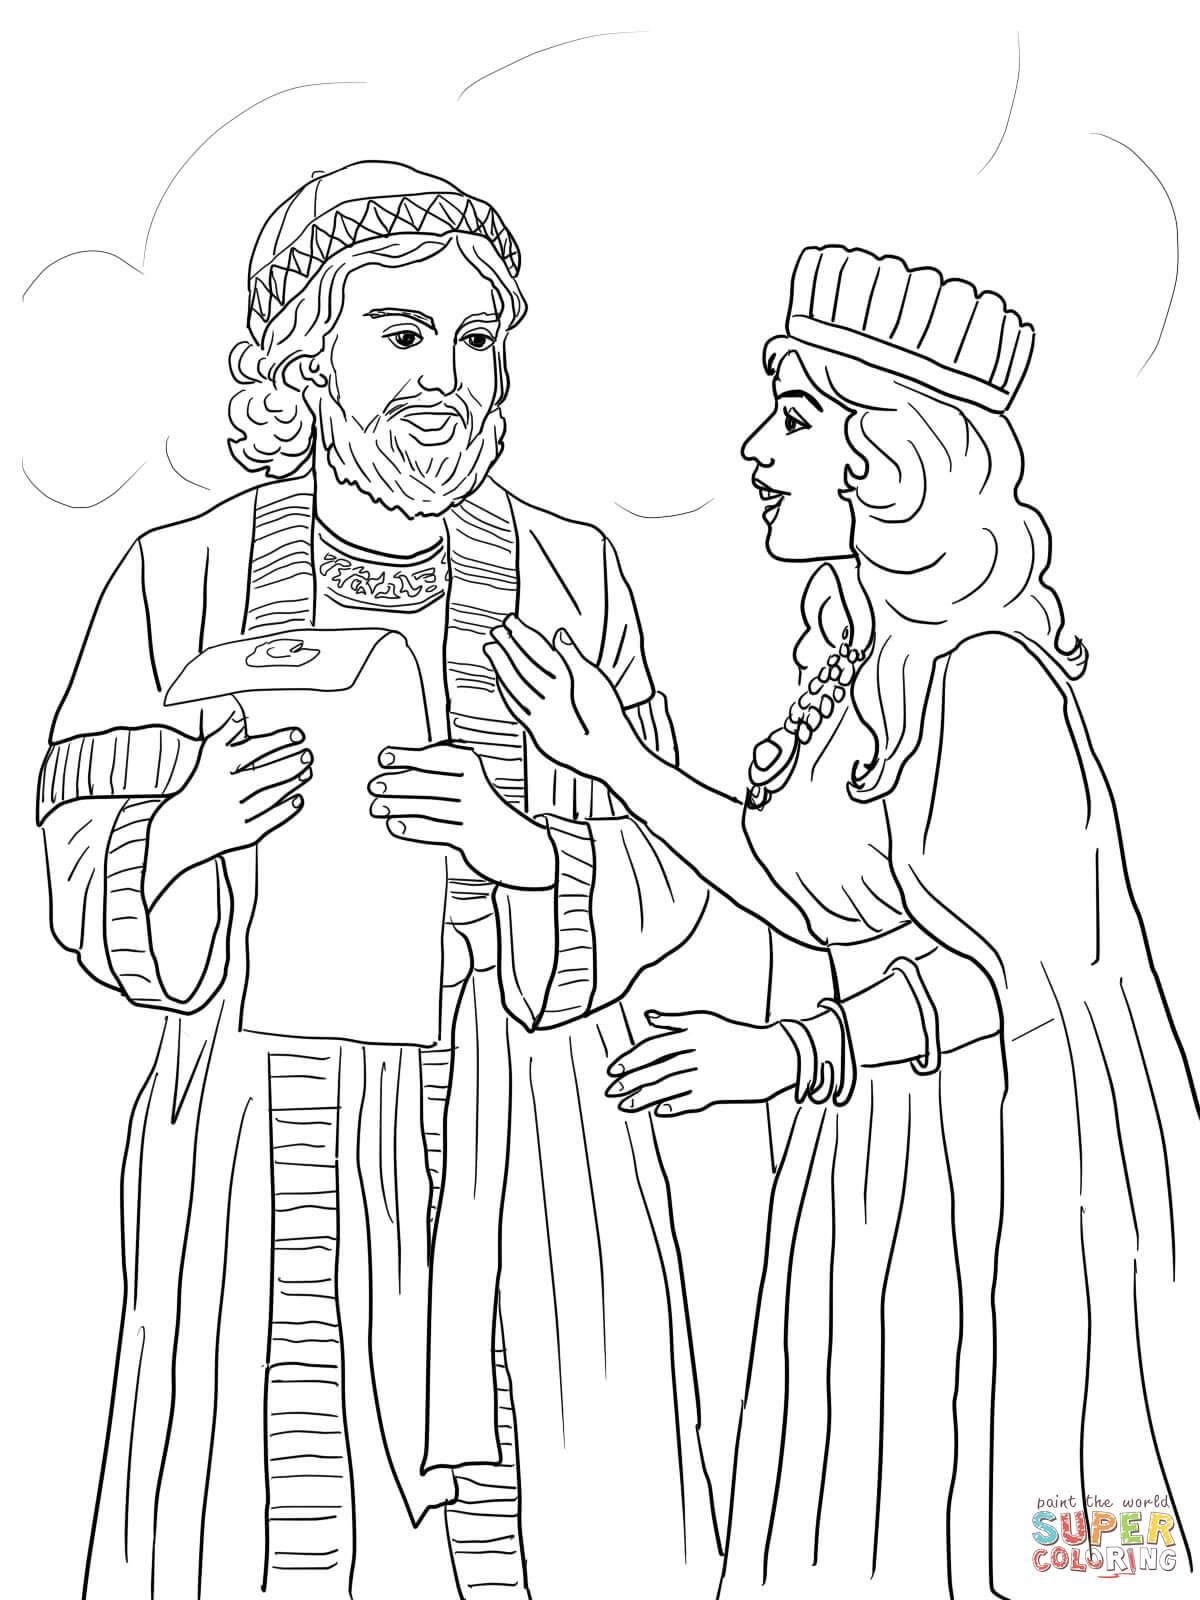 51 Coloring Pages Queen Esther Queen Esther Bible Story Queen Esther Bible Bible Coloring Pages